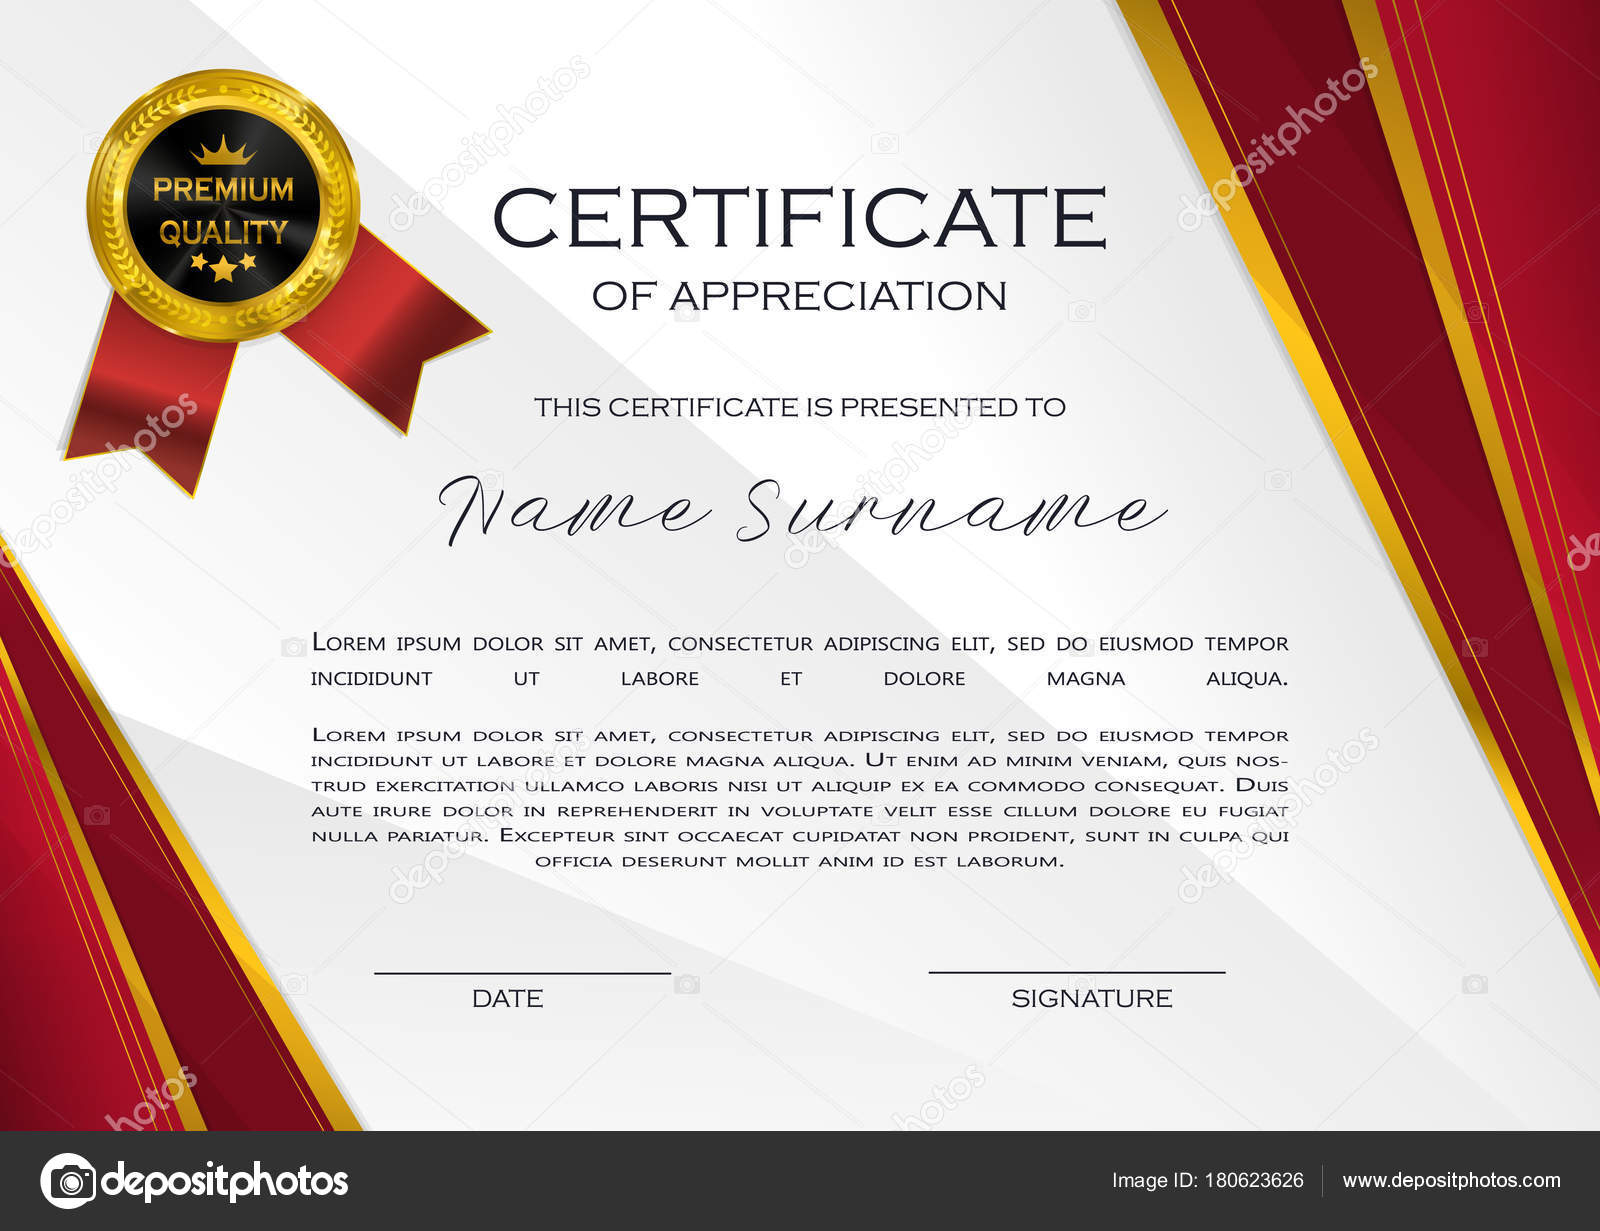 qualification certificate appreciation design elegant luxury modern pattern best quality stock vector